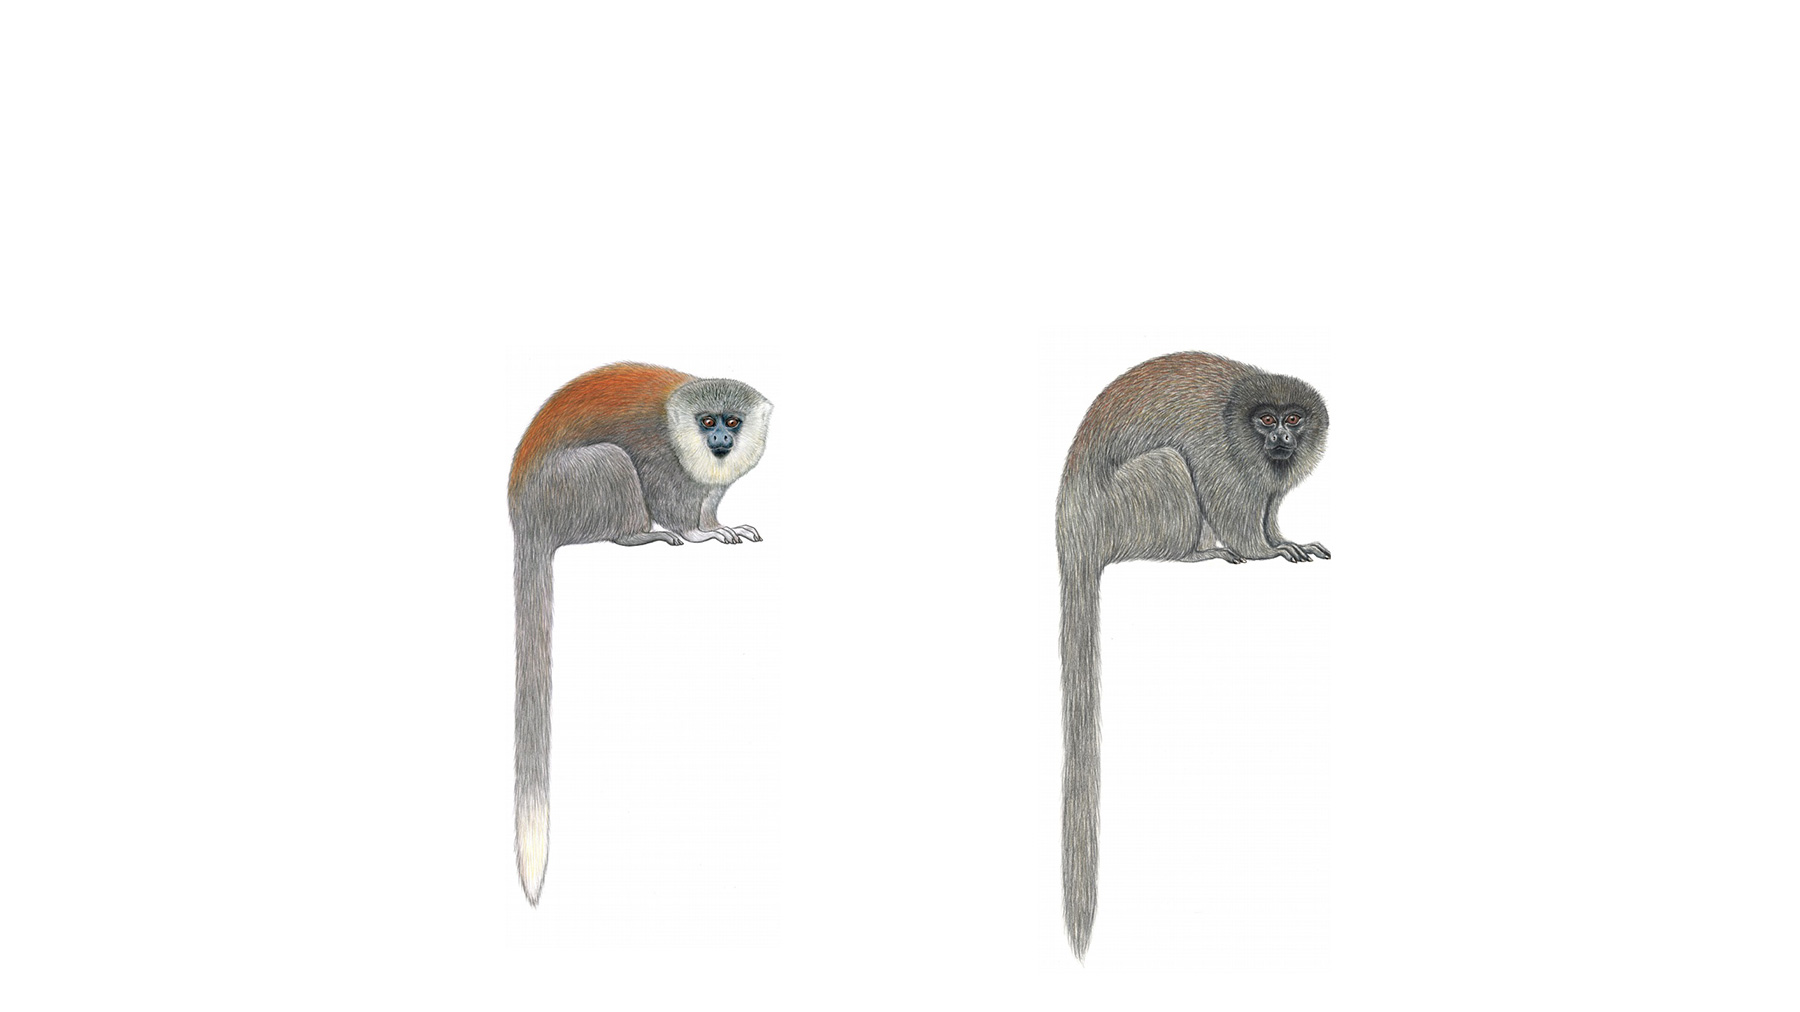 Plecturocebus parecis (left) and the closely related Plecturocebus cinerascens (right). Illustration courtesy of Stephen D. Nash.